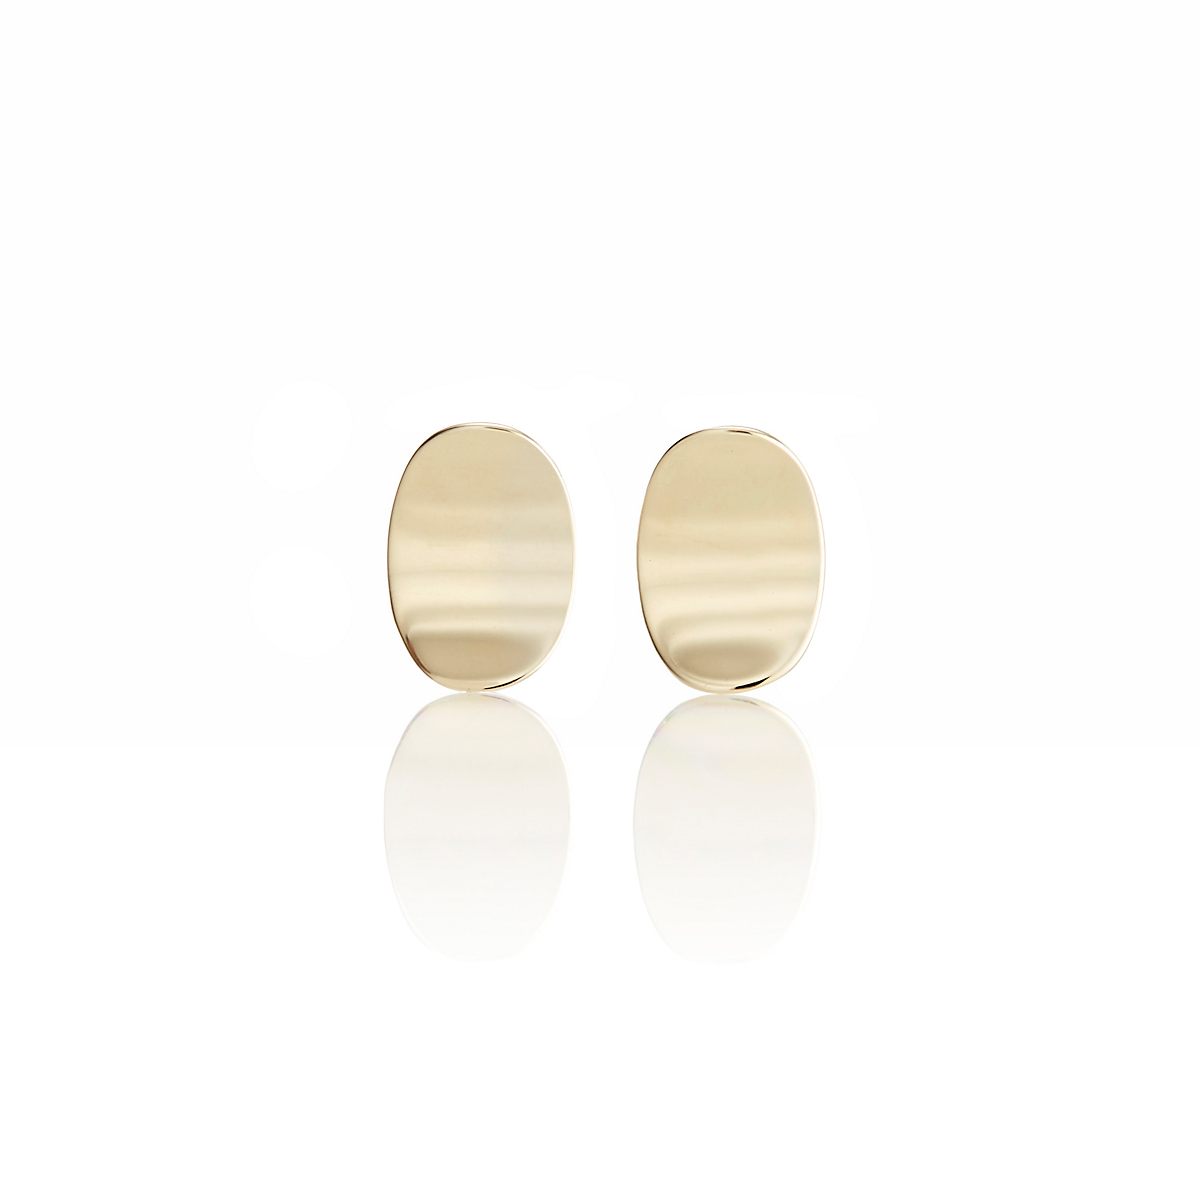 Gump's Petite Concave Oval Stud Earrings